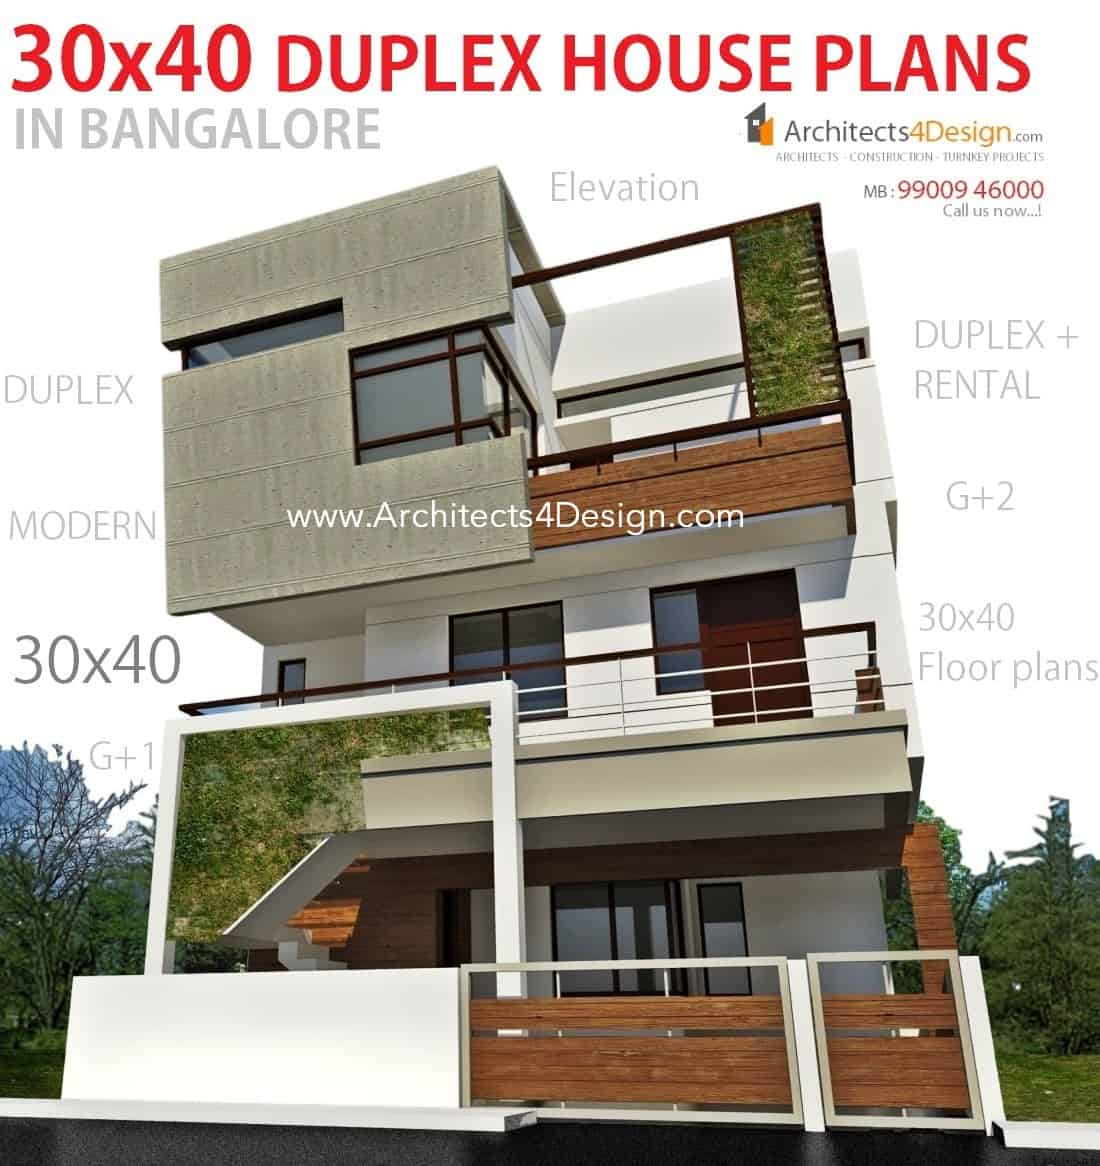 Best House Rental Site: 30x40 HOUSE PLANS In Bangalore For G+1 G+2 G+3 G+4 Floors